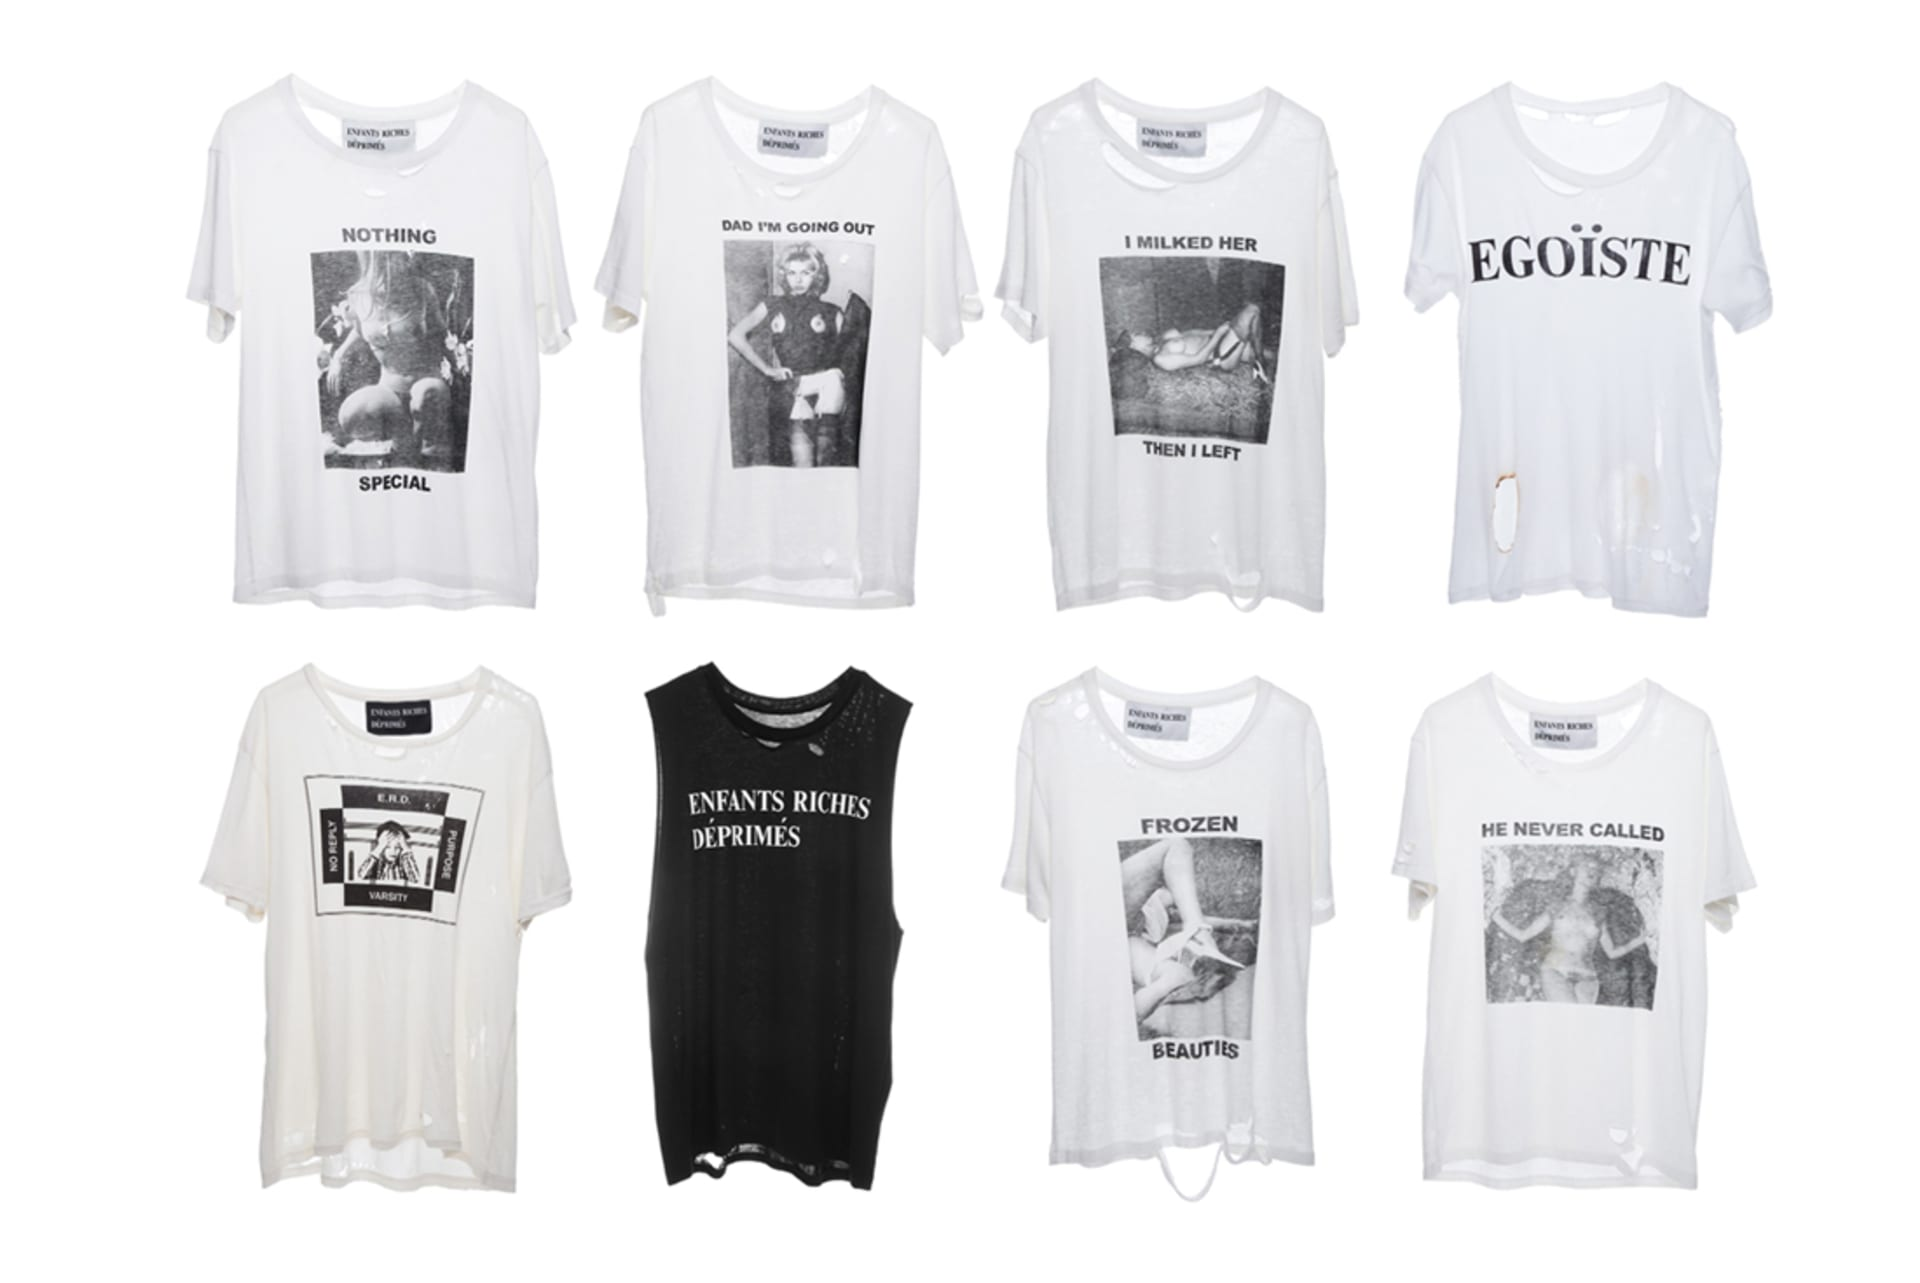 5971cb82f2ab9 Selections of T-shirts from Enfants Riches Déprimés Spring 2016 collection.    Image via Enfants Riches Déprimés